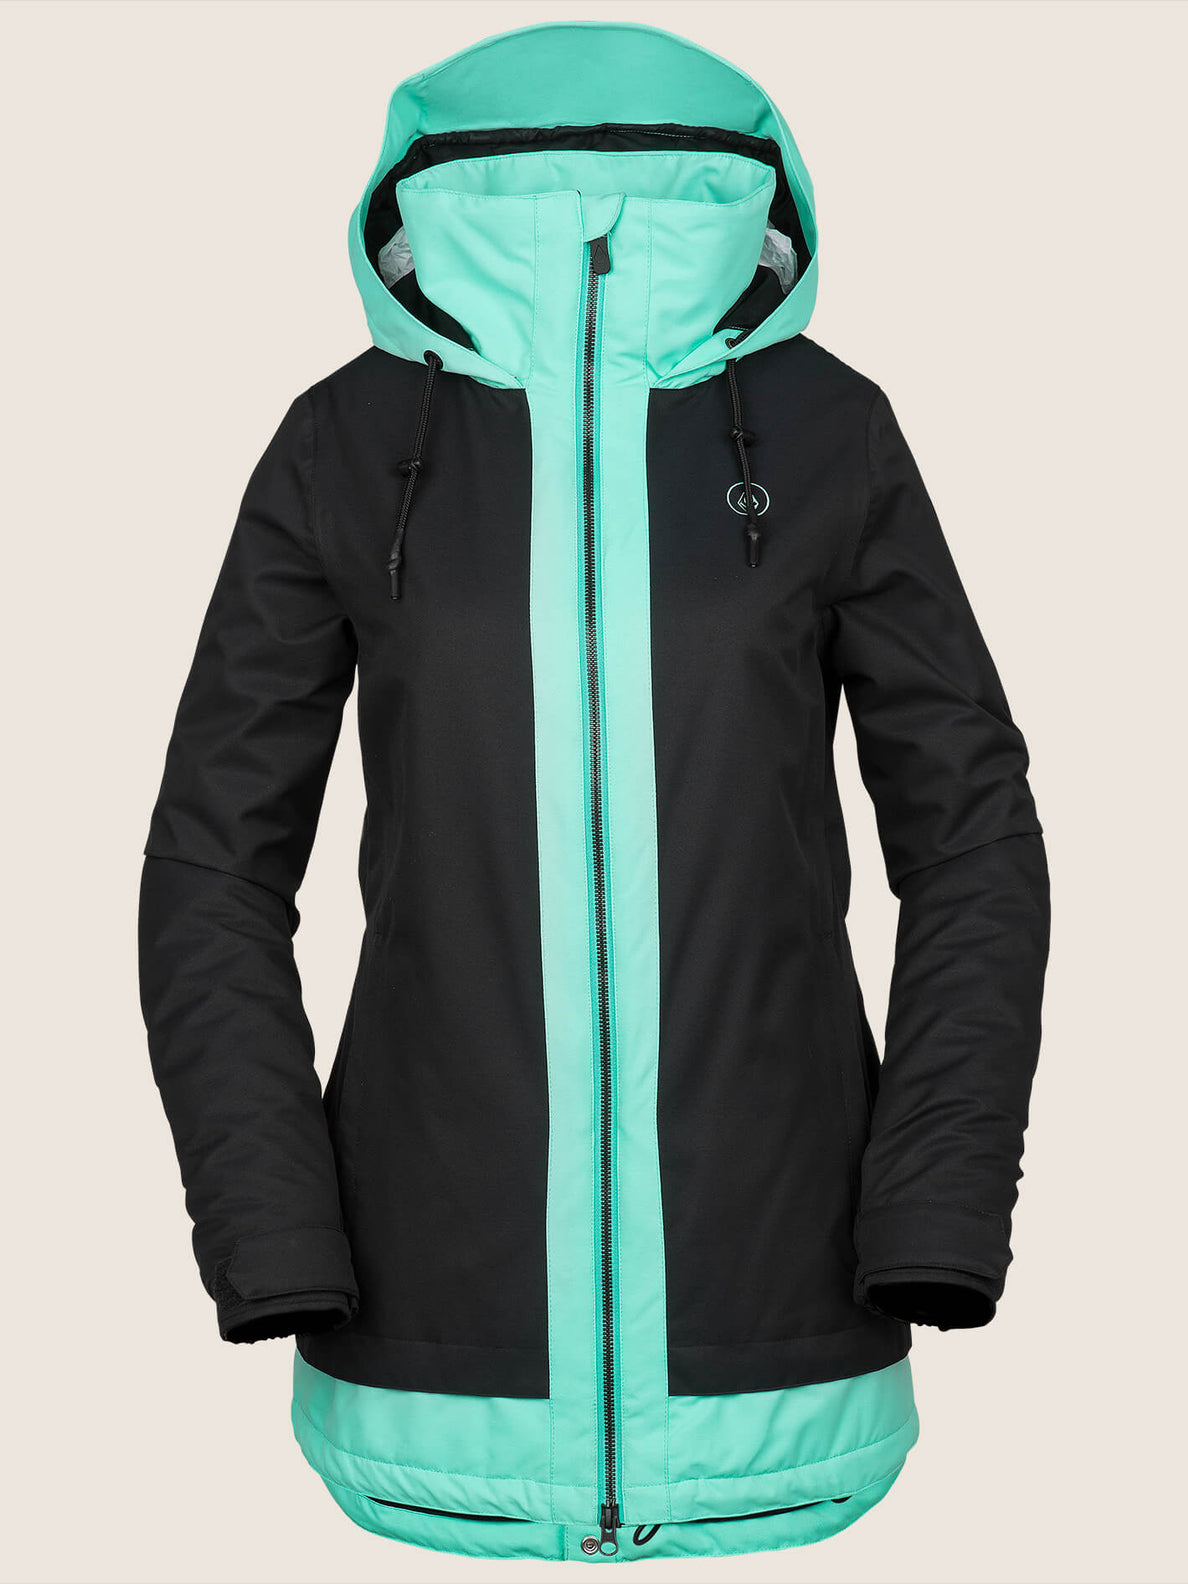 Westland Insulated Jacket In Black, Front View